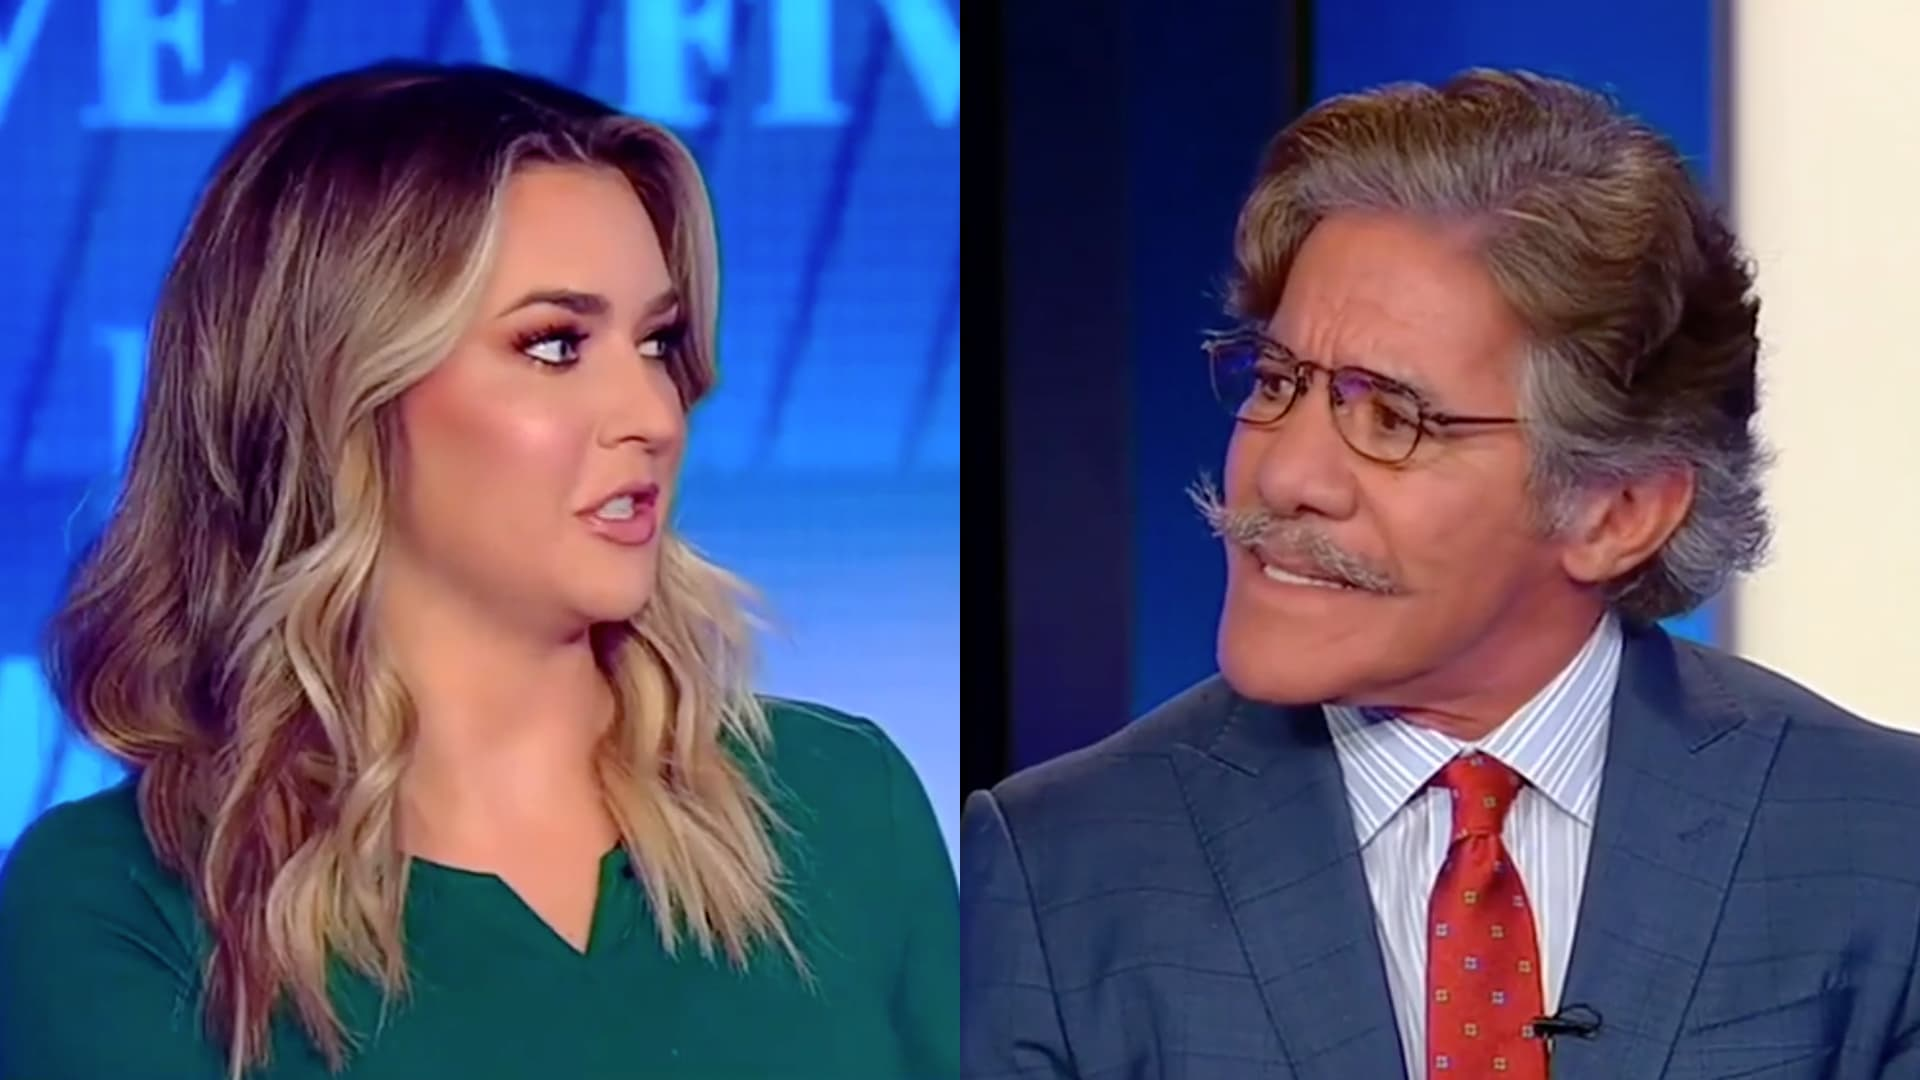 Geraldo defends Kamala Harris after Fox News co-host insults her: 'That's so mean'